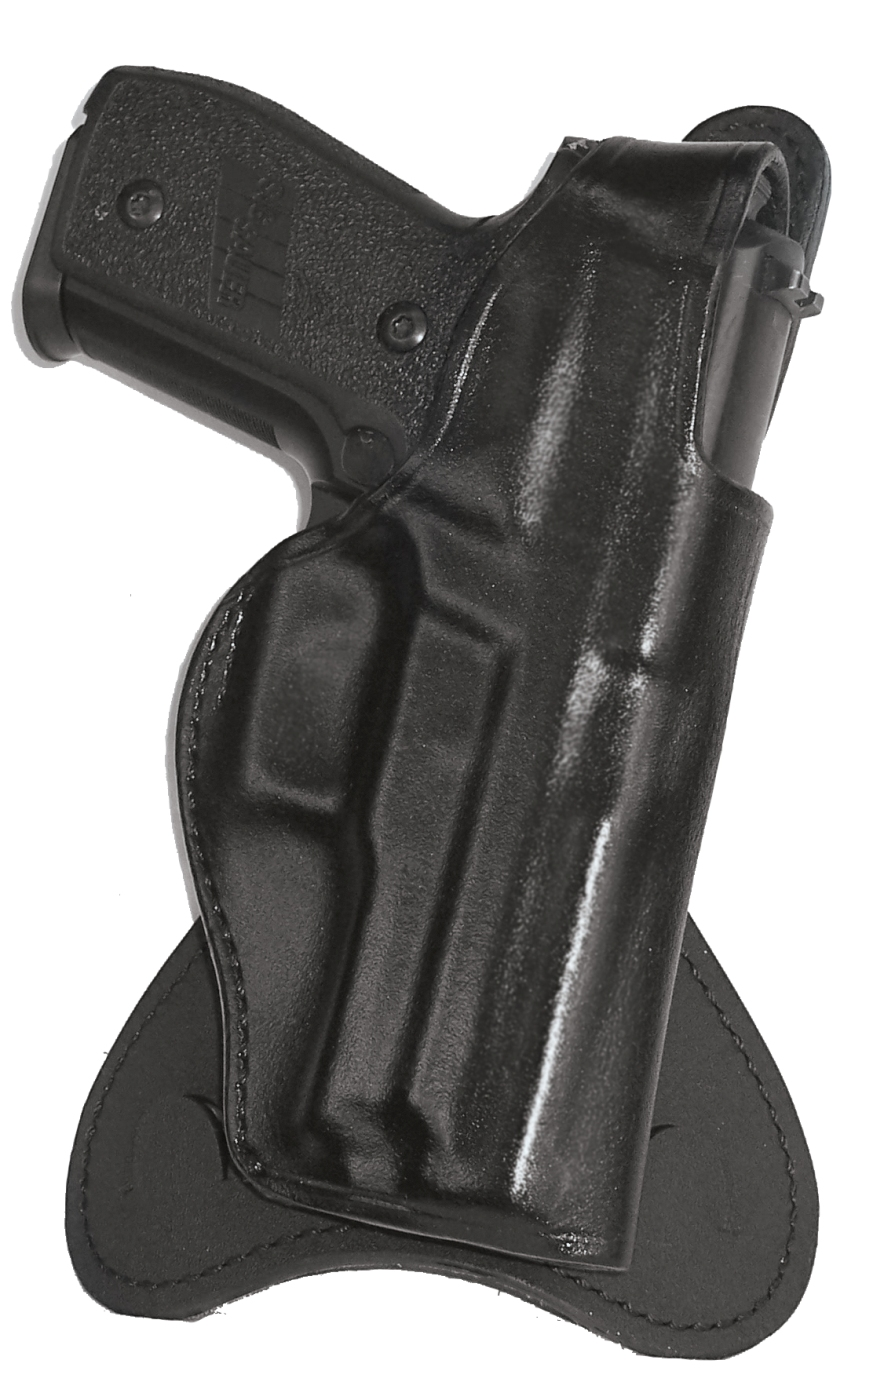 H720-PADDLE HOLSTER